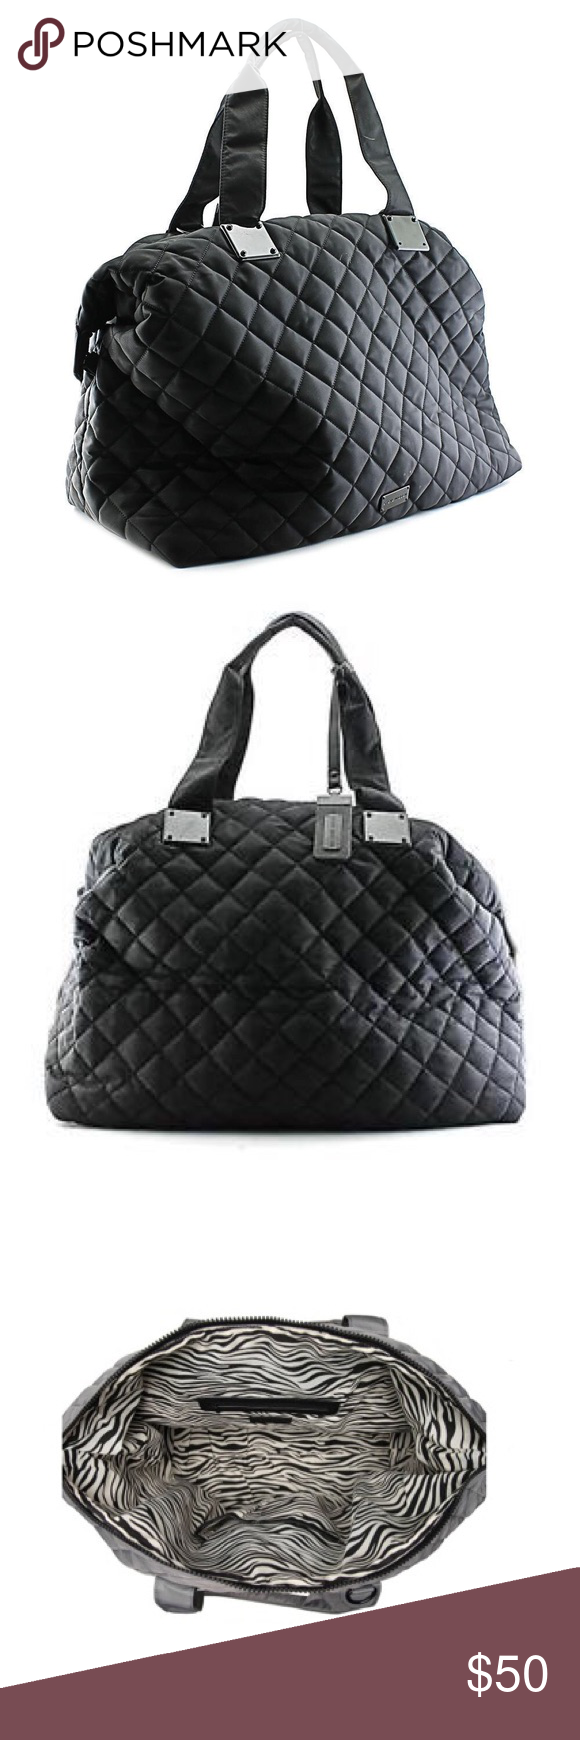 Steve Madden Weekend Bag This is a fun travel overnight/weekend bag. It's like new. Steve Madden Bags Travel Bags